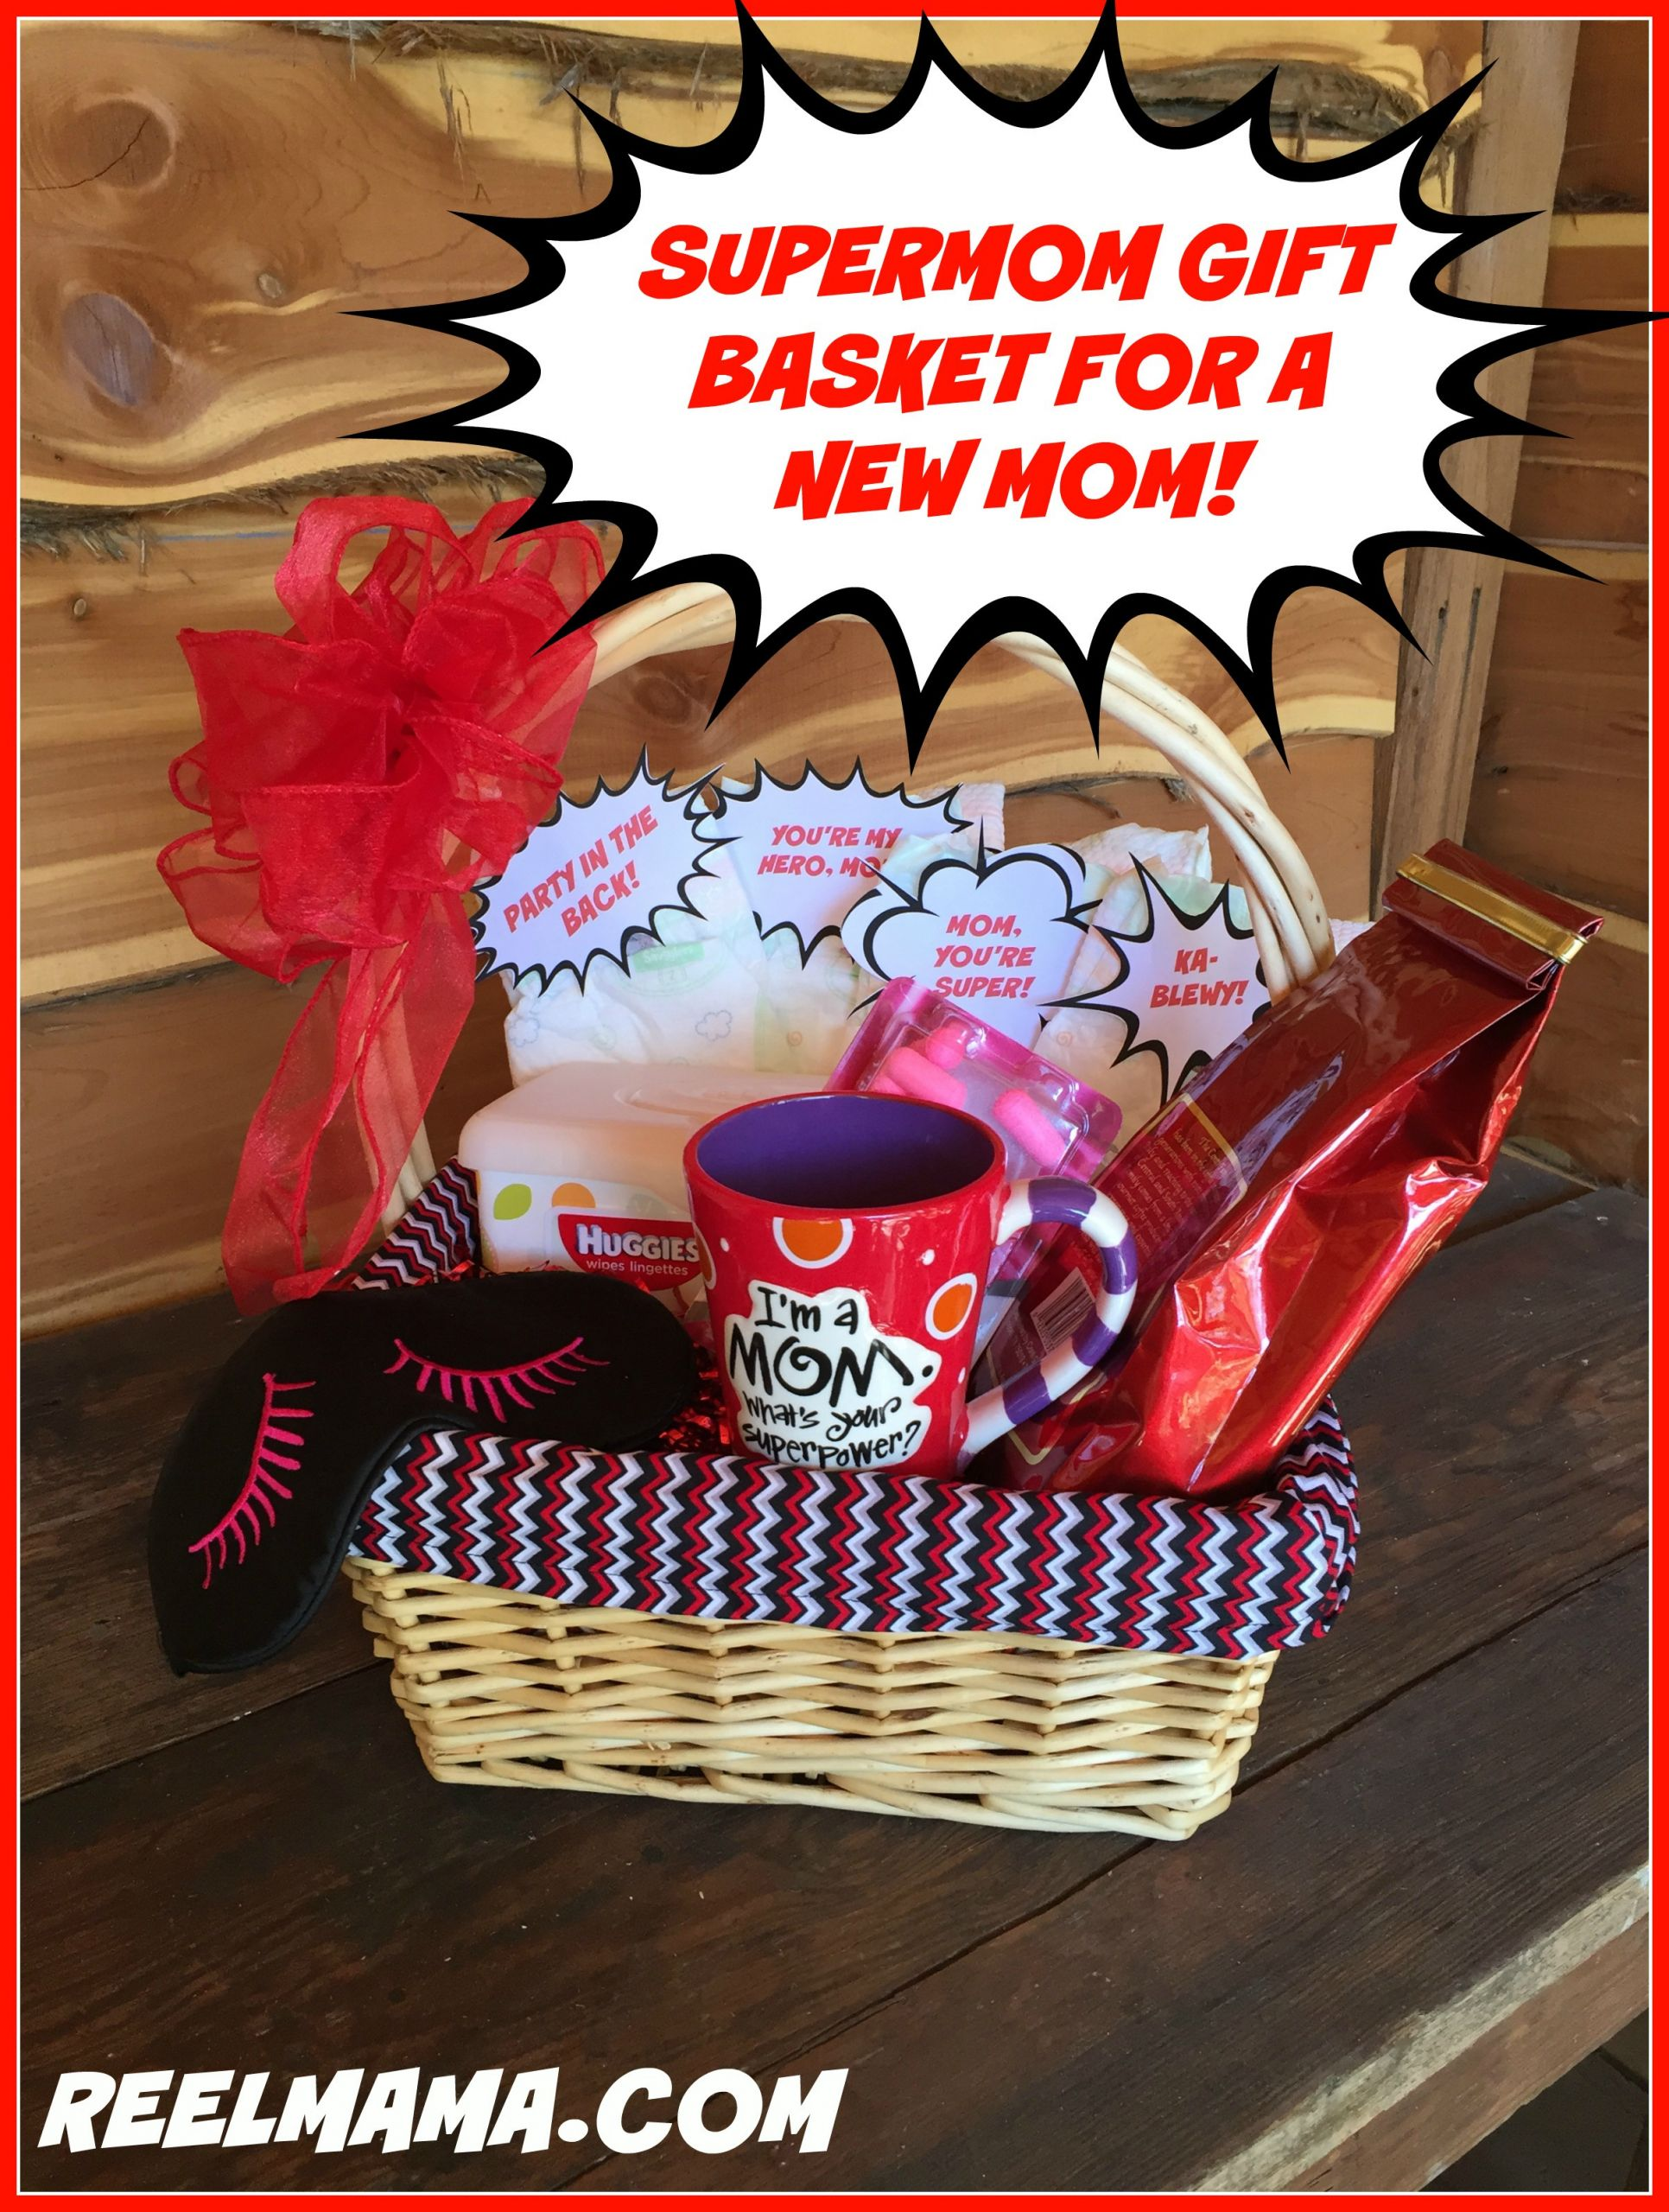 Gift Basket Ideas For New Mom  Supermom t basket for a new mom Reelmama